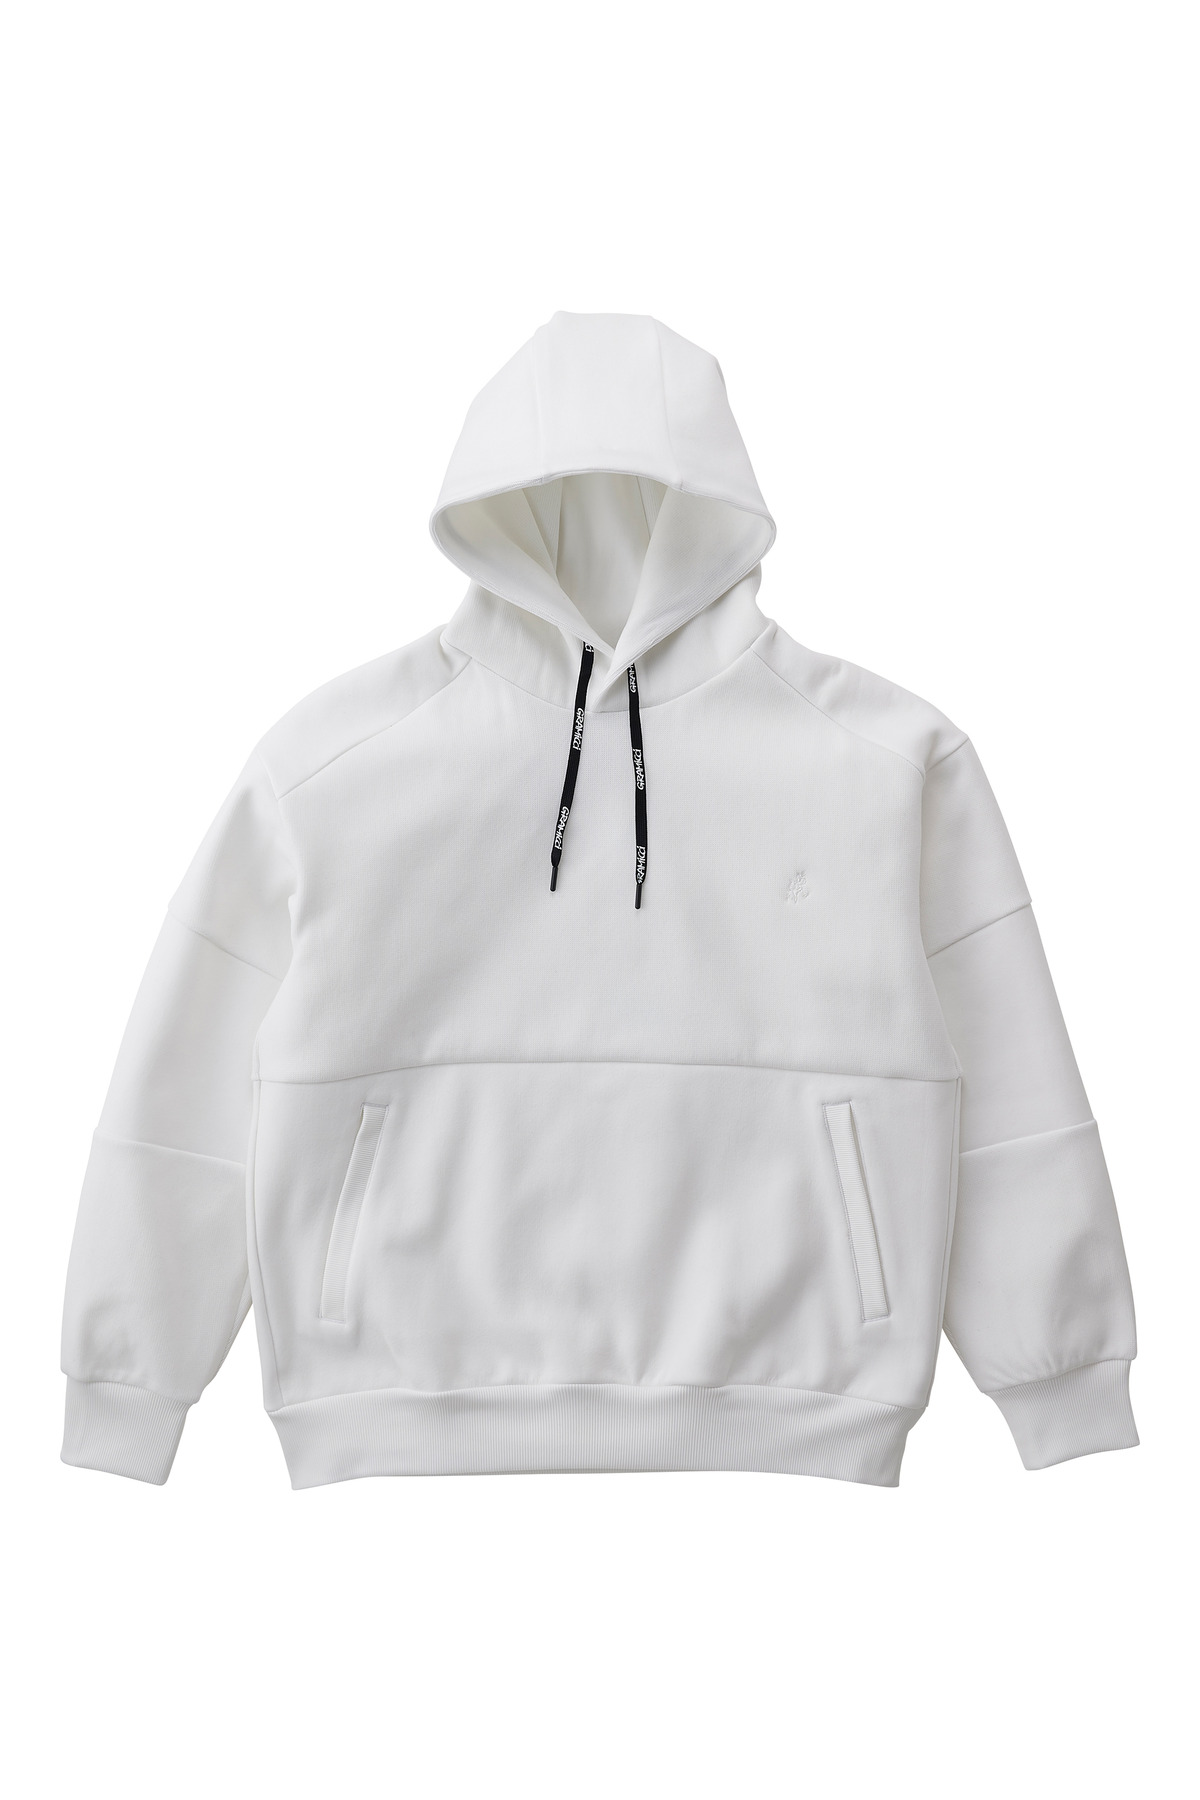 QUARTER KNIT HOODY WHITE